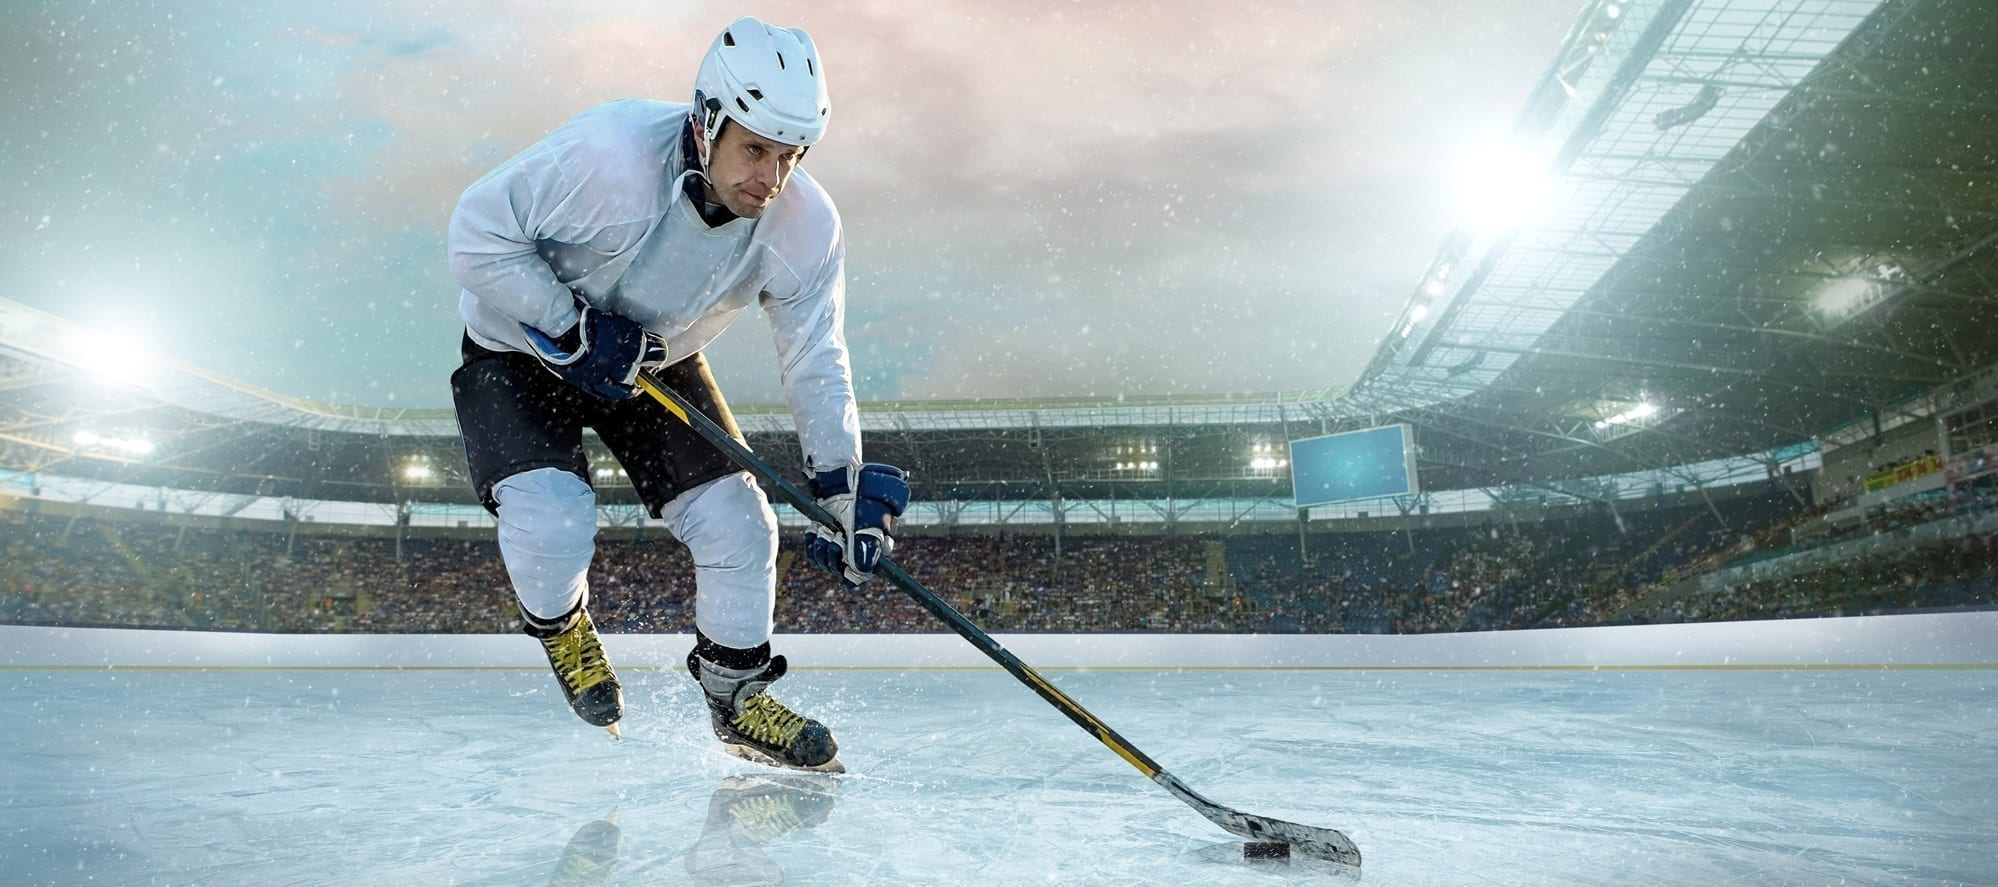 ice-hockey-player-1 Athletic Performance